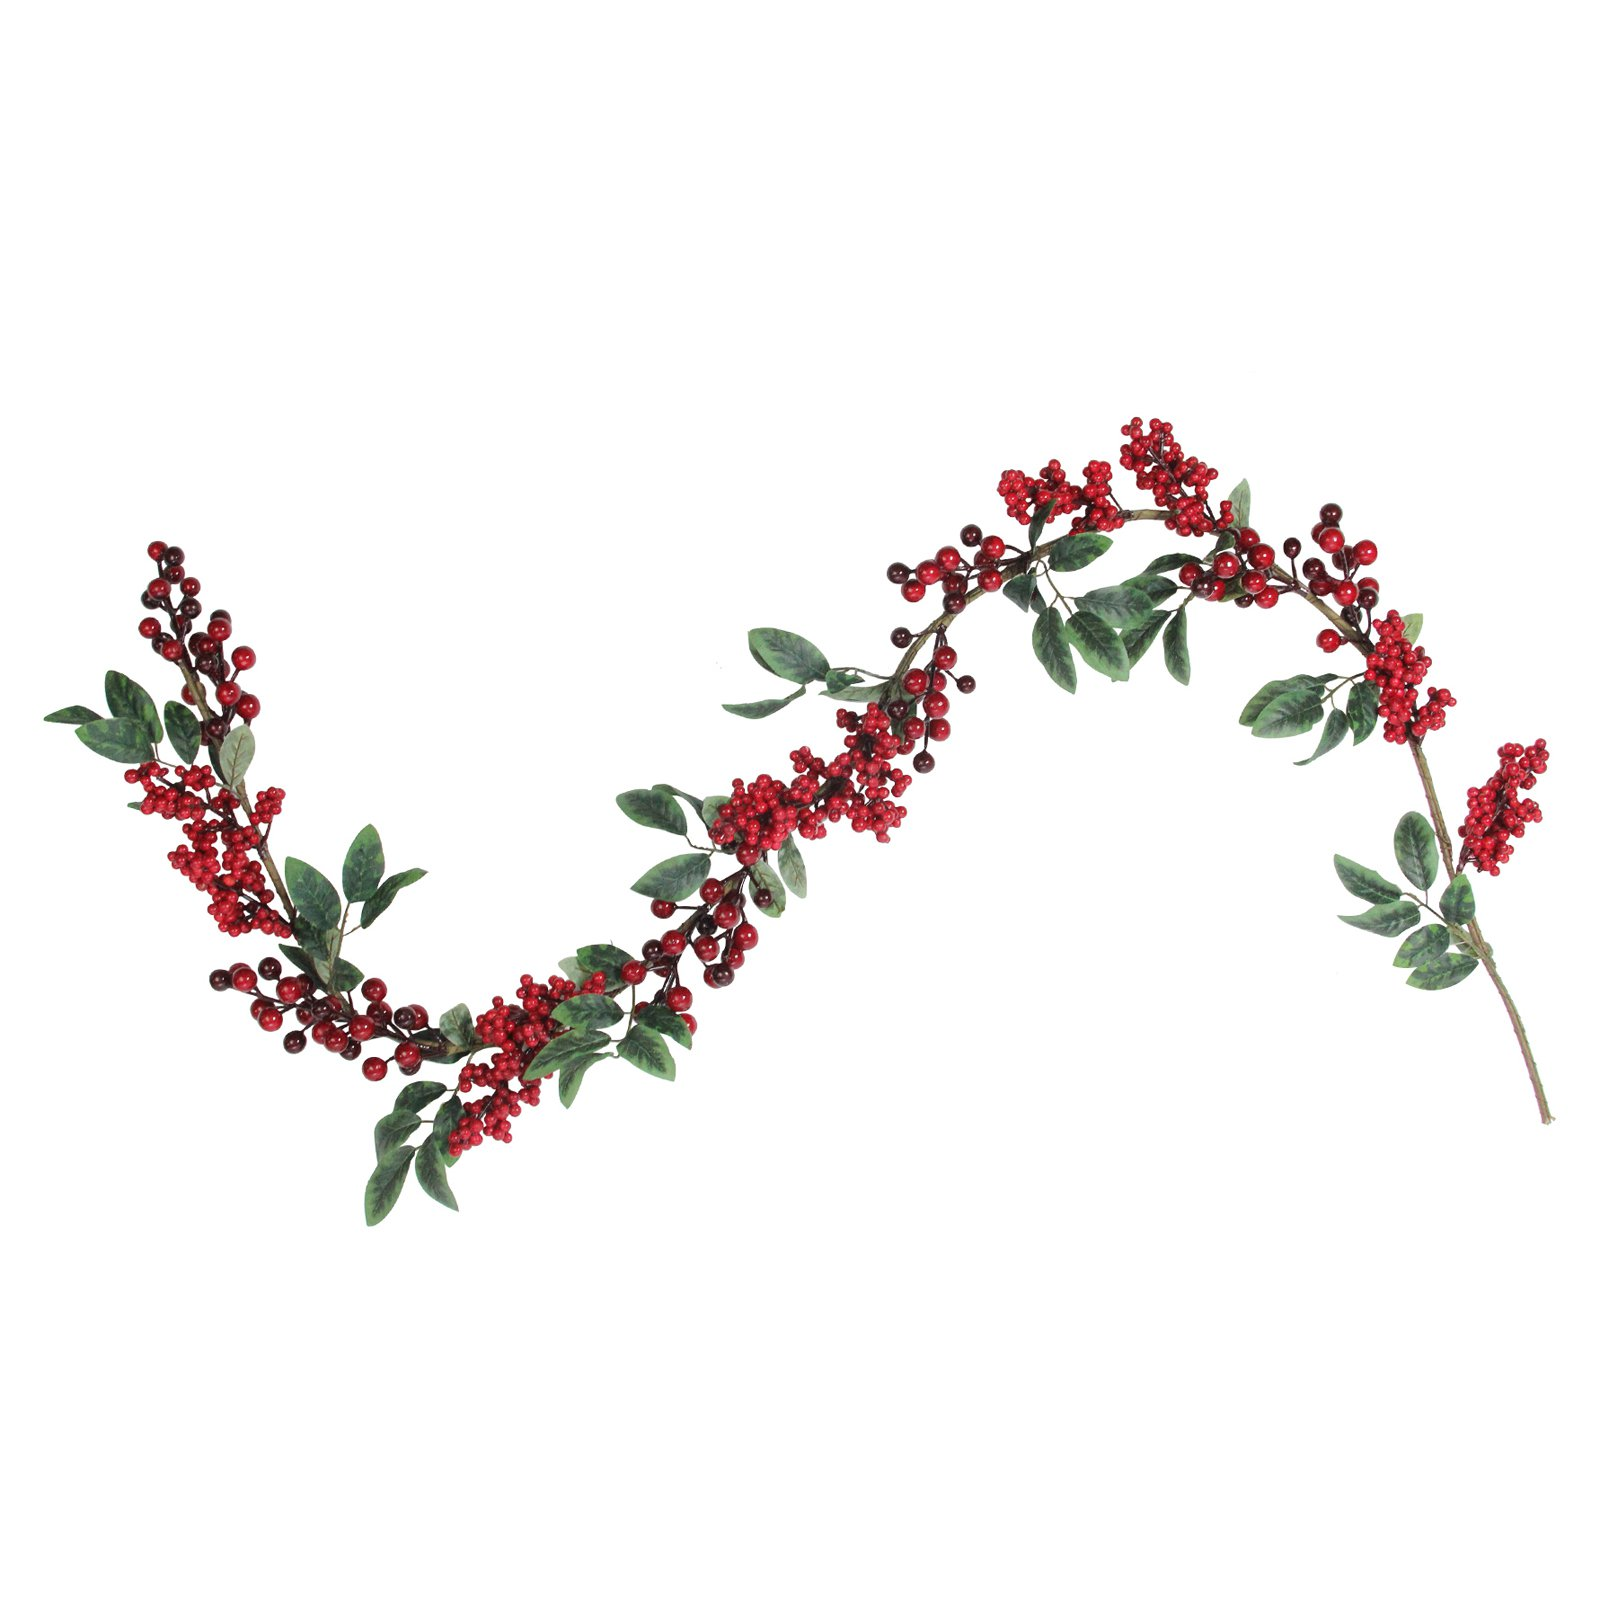 Northlight Berries with Leaves 5 ft. Unlit Christmas Garland